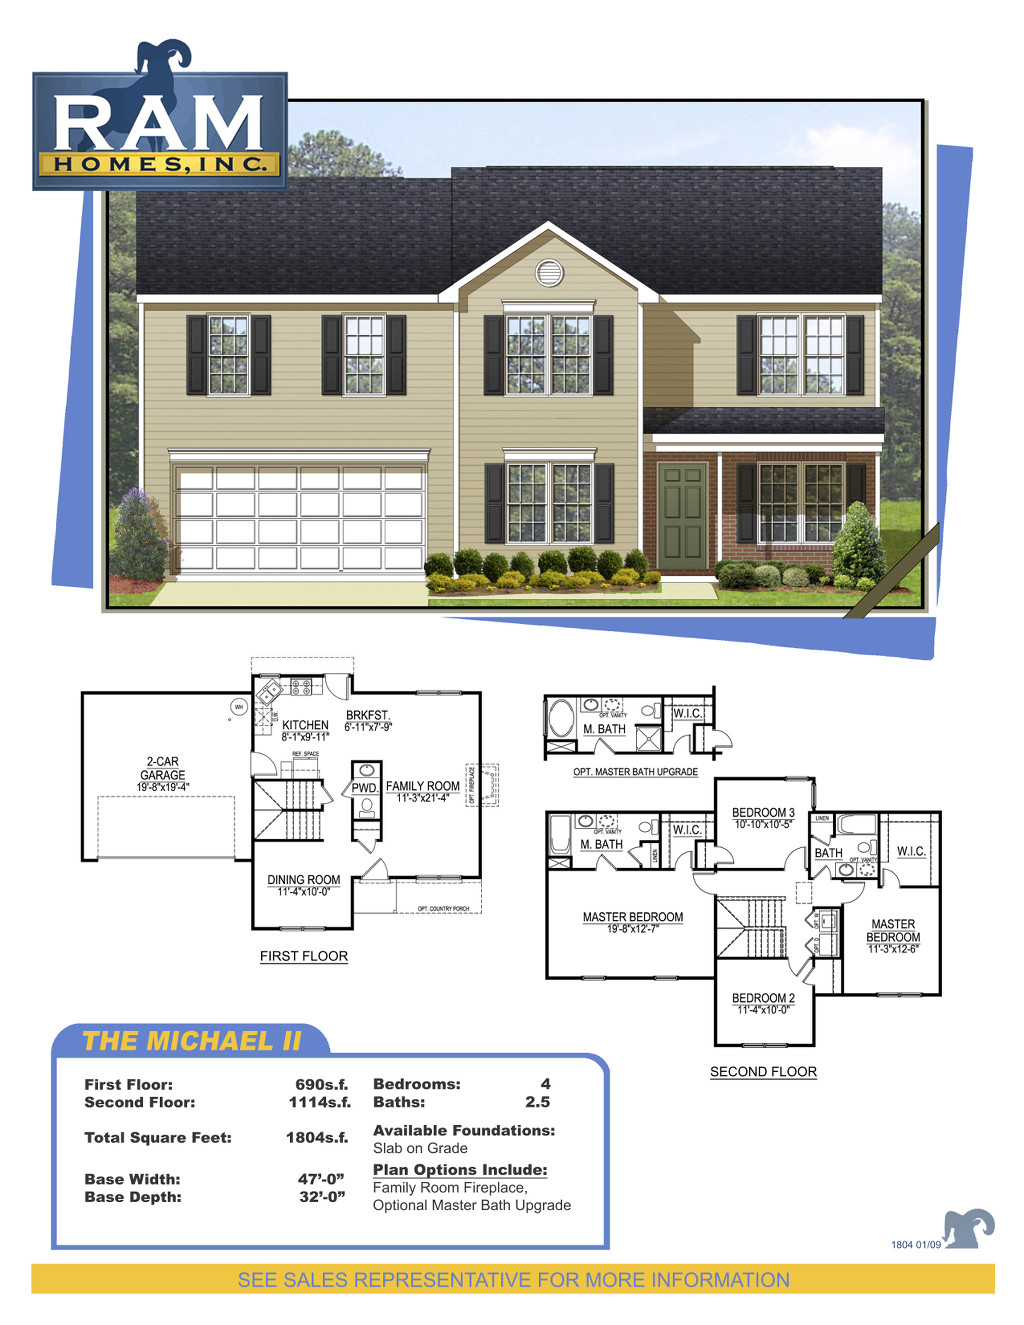 Ram Homes Michael 2 Plan